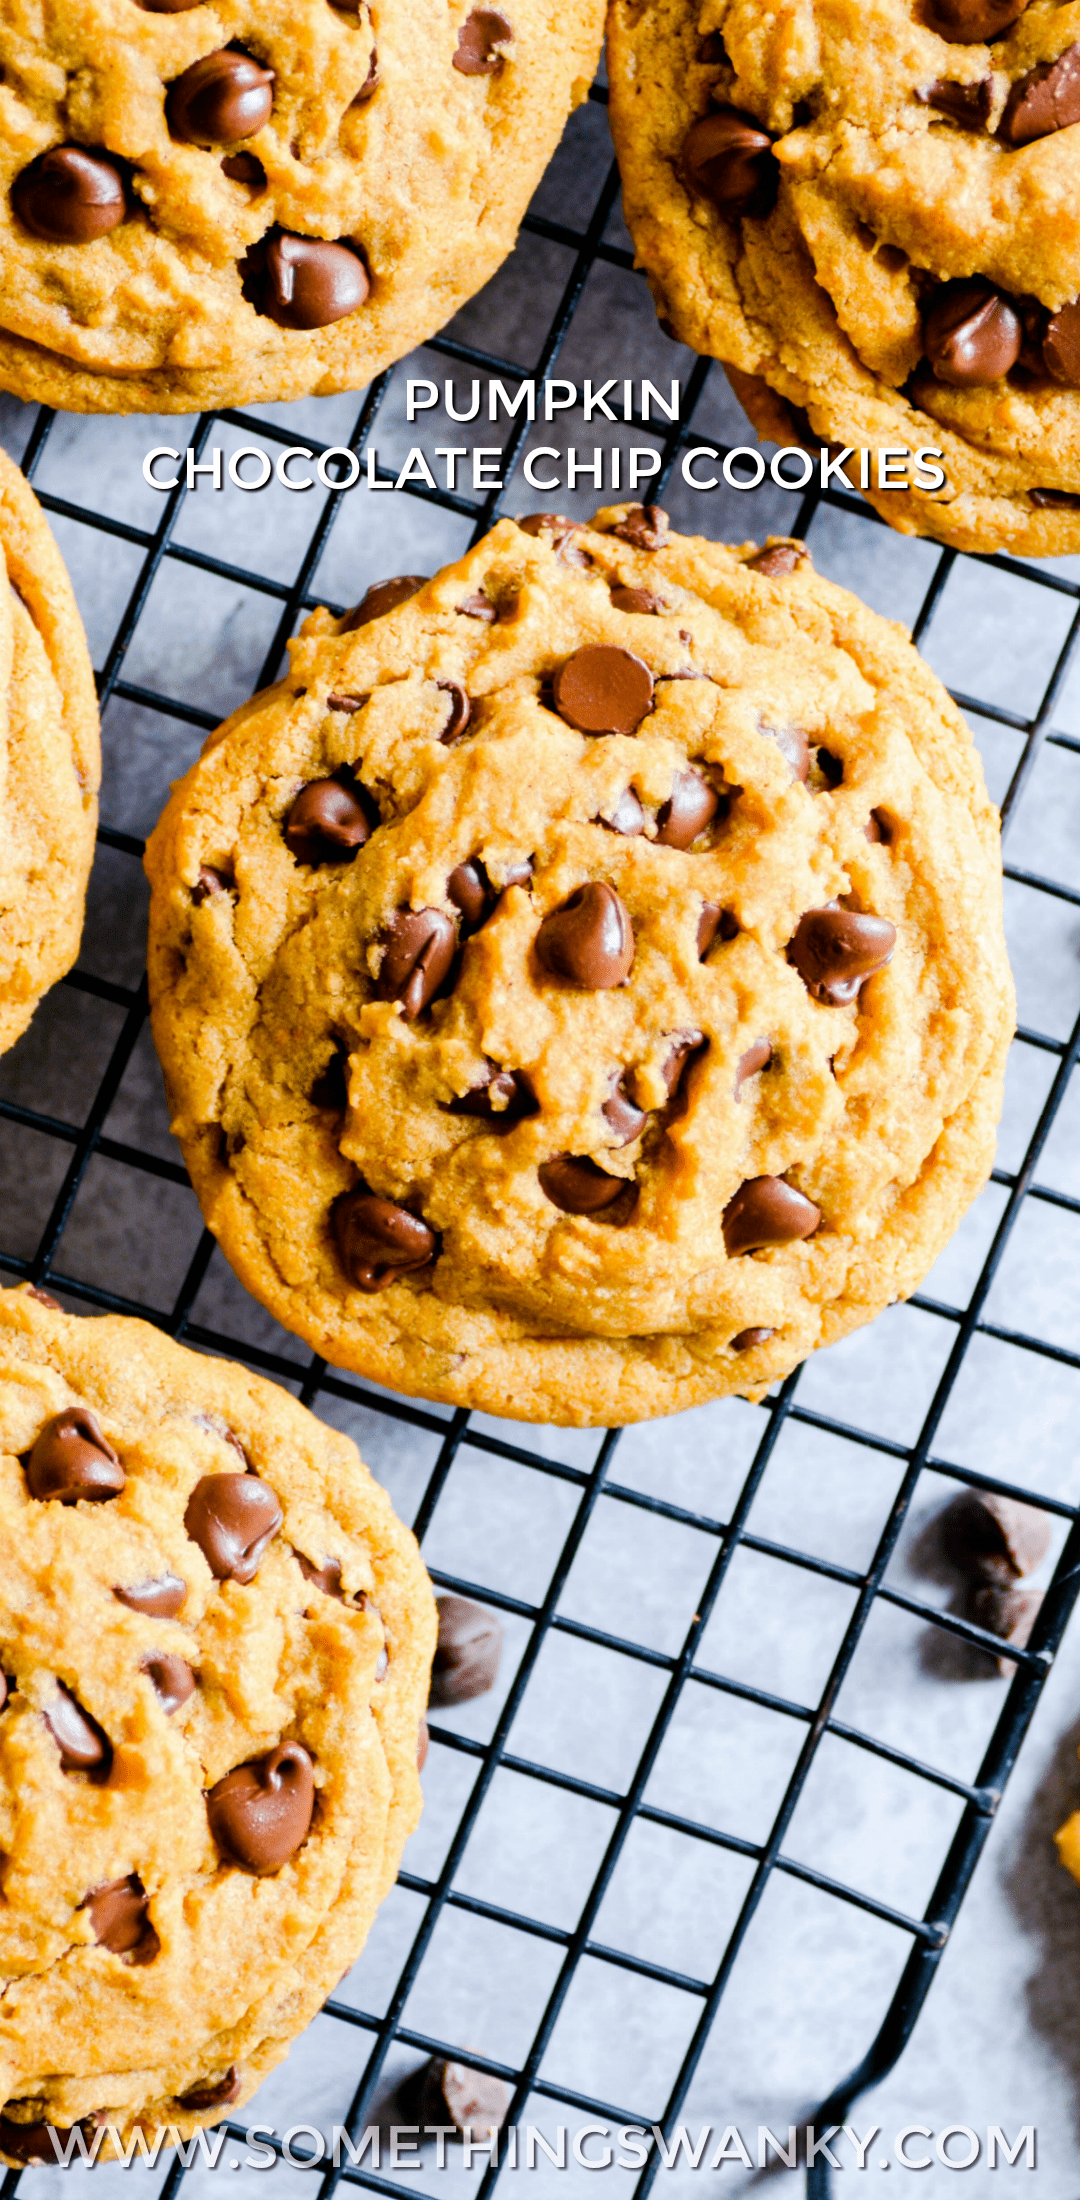 If you like a little pumpkin with your chocolate chip cookies, this is the pumpkin cookie for you! Chewy centers and crispy, golden edges with lots and lots of chocolate chips.